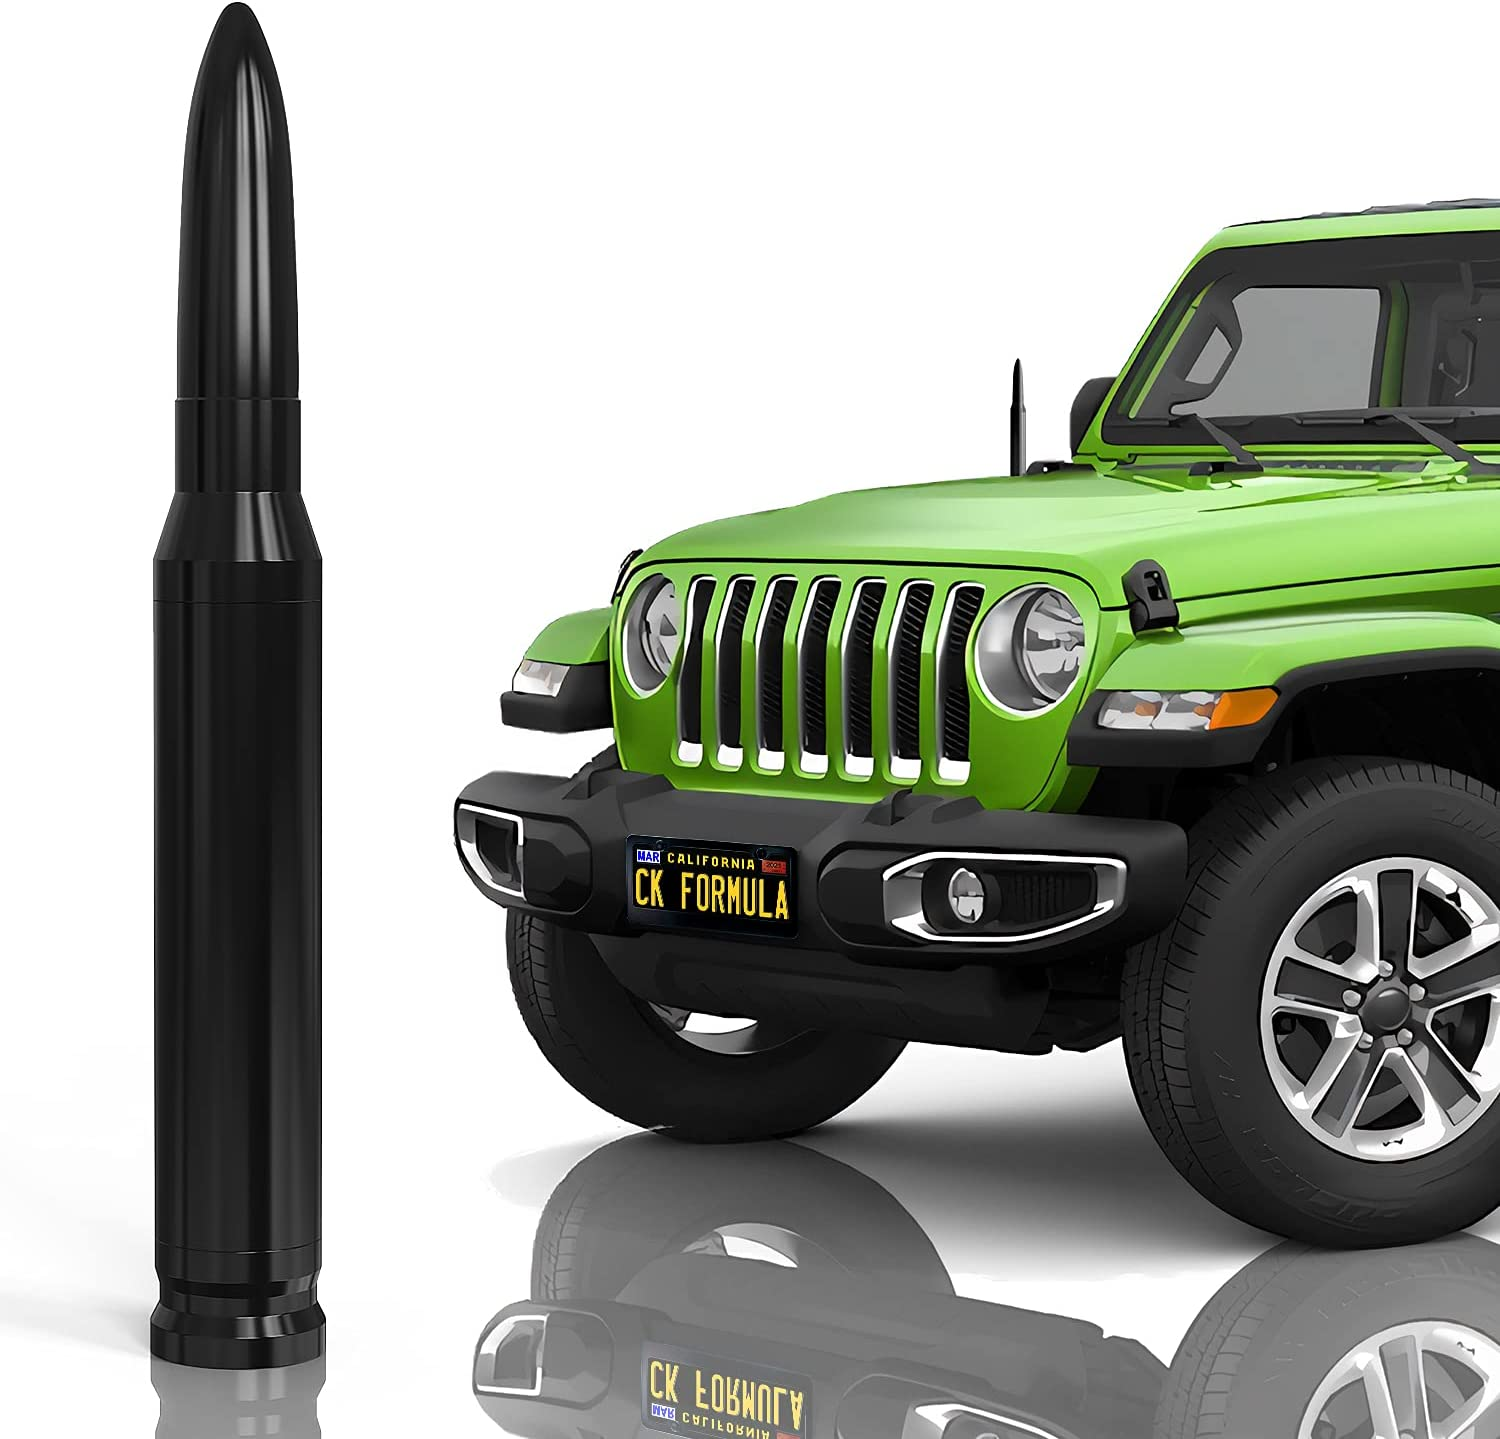 """CK FORMULA 50 Cal Bullet Antenna for SUV, 5.5"""" Black Automotive Antenna Replacement, AM/FM Radio Compatibility, Solid 6061 Aluminum Grading, Anti Theft Design, Car Wash Safe, Universal Fit, 1"""